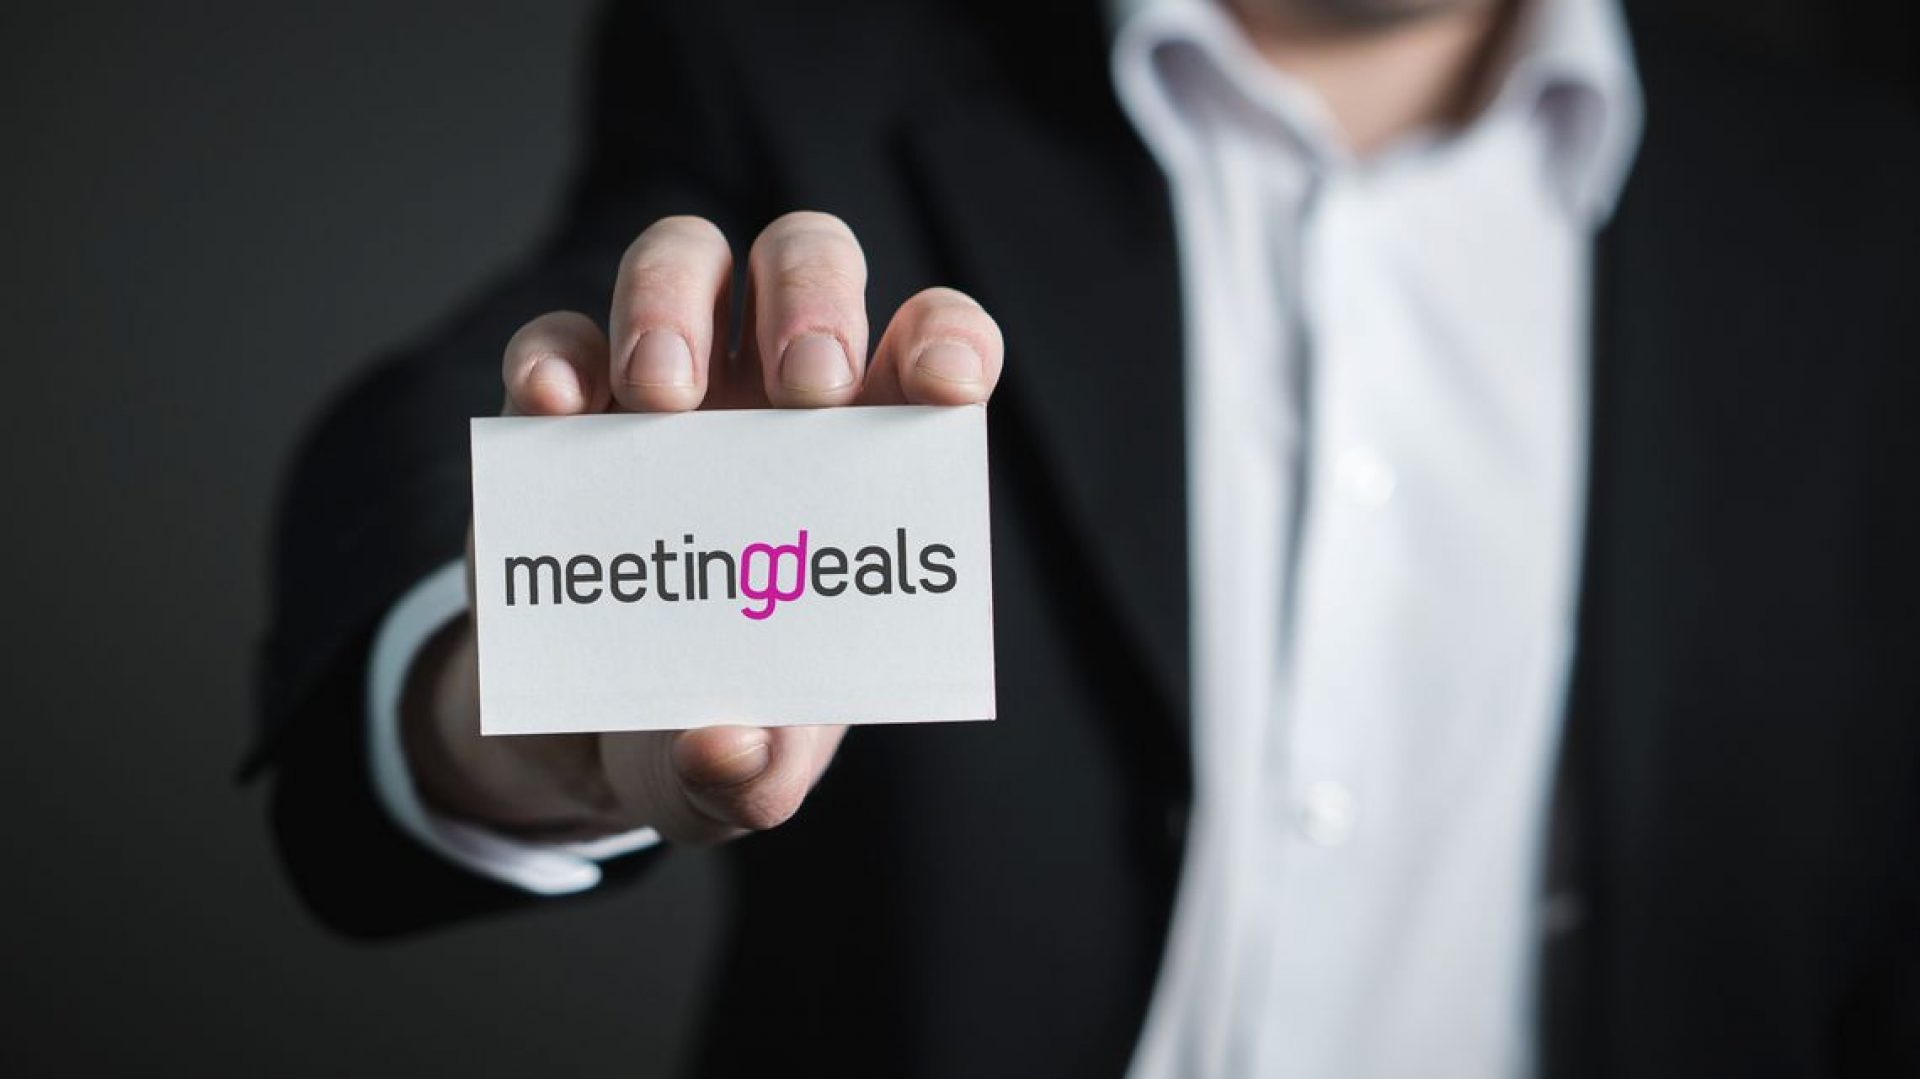 Meetingdeals